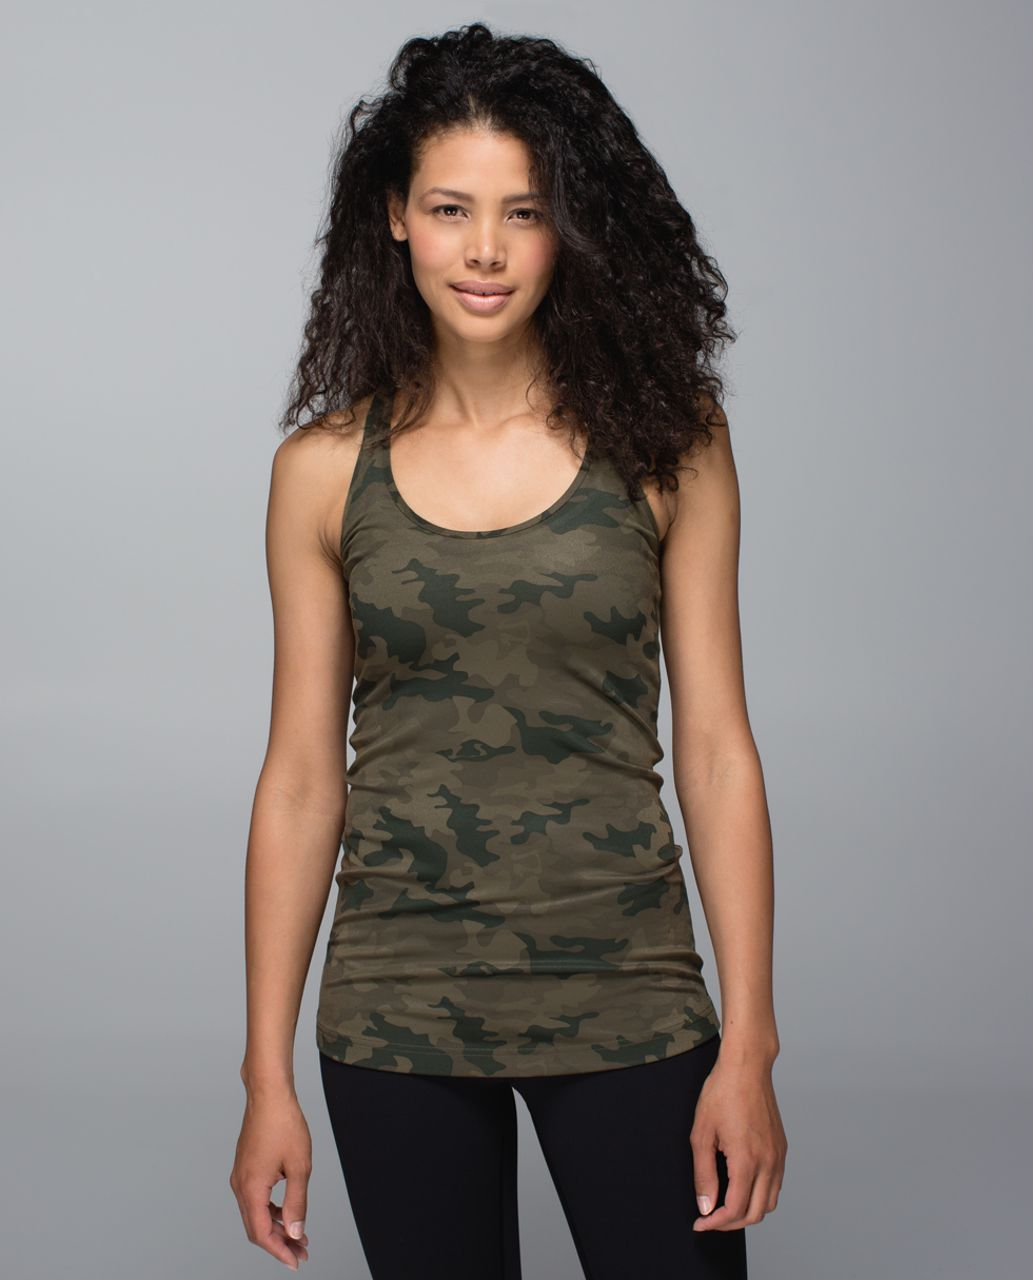 Lululemon Cool Racerback - Savasana Camo 20cm Fatigue Green